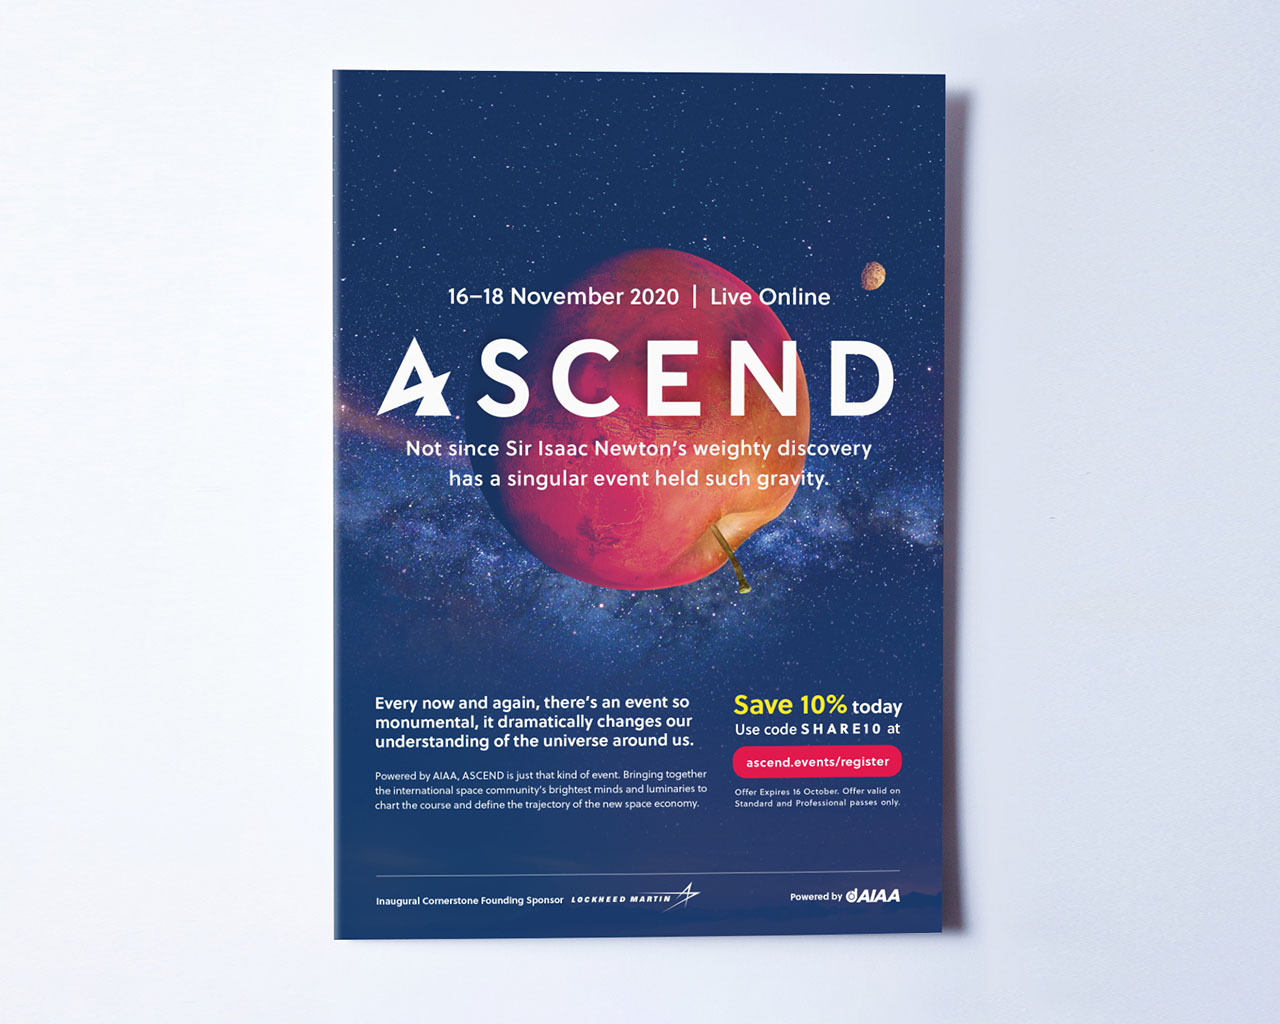 Print ad promoting the virtual event ASCEND